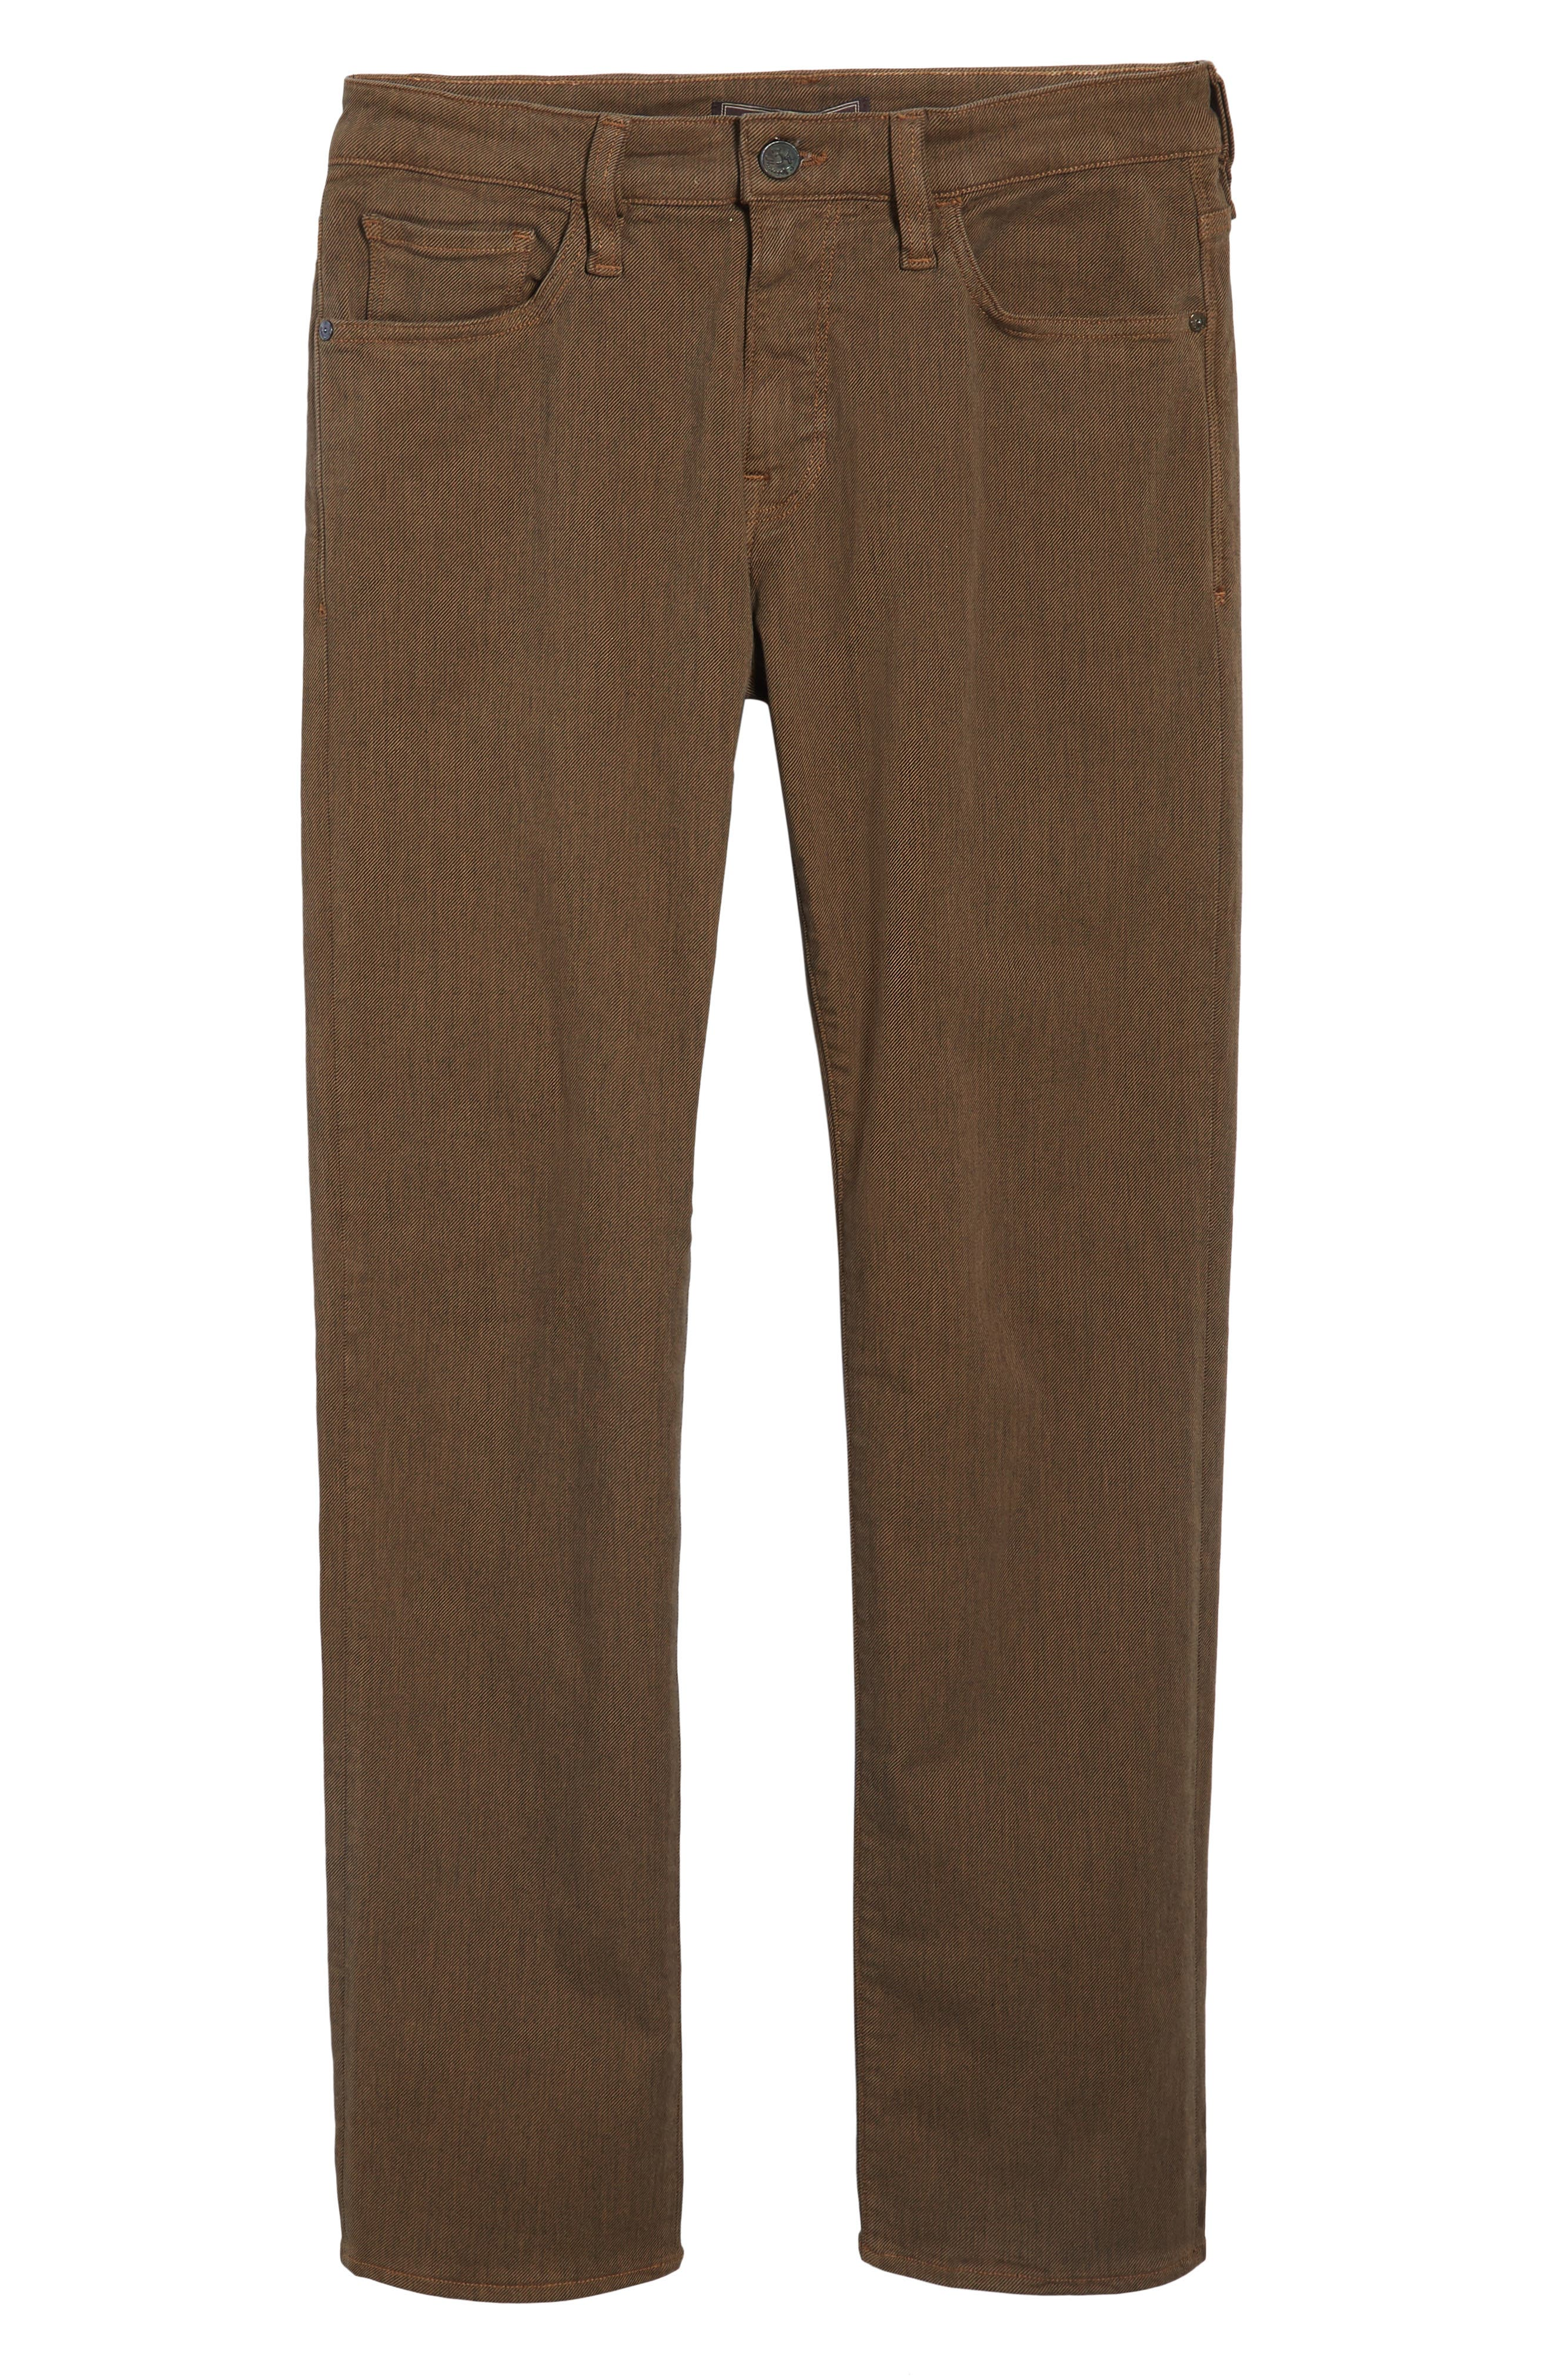 Heritage 34 Courage Straight Leg Jeans,                             Alternate thumbnail 6, color,                             200